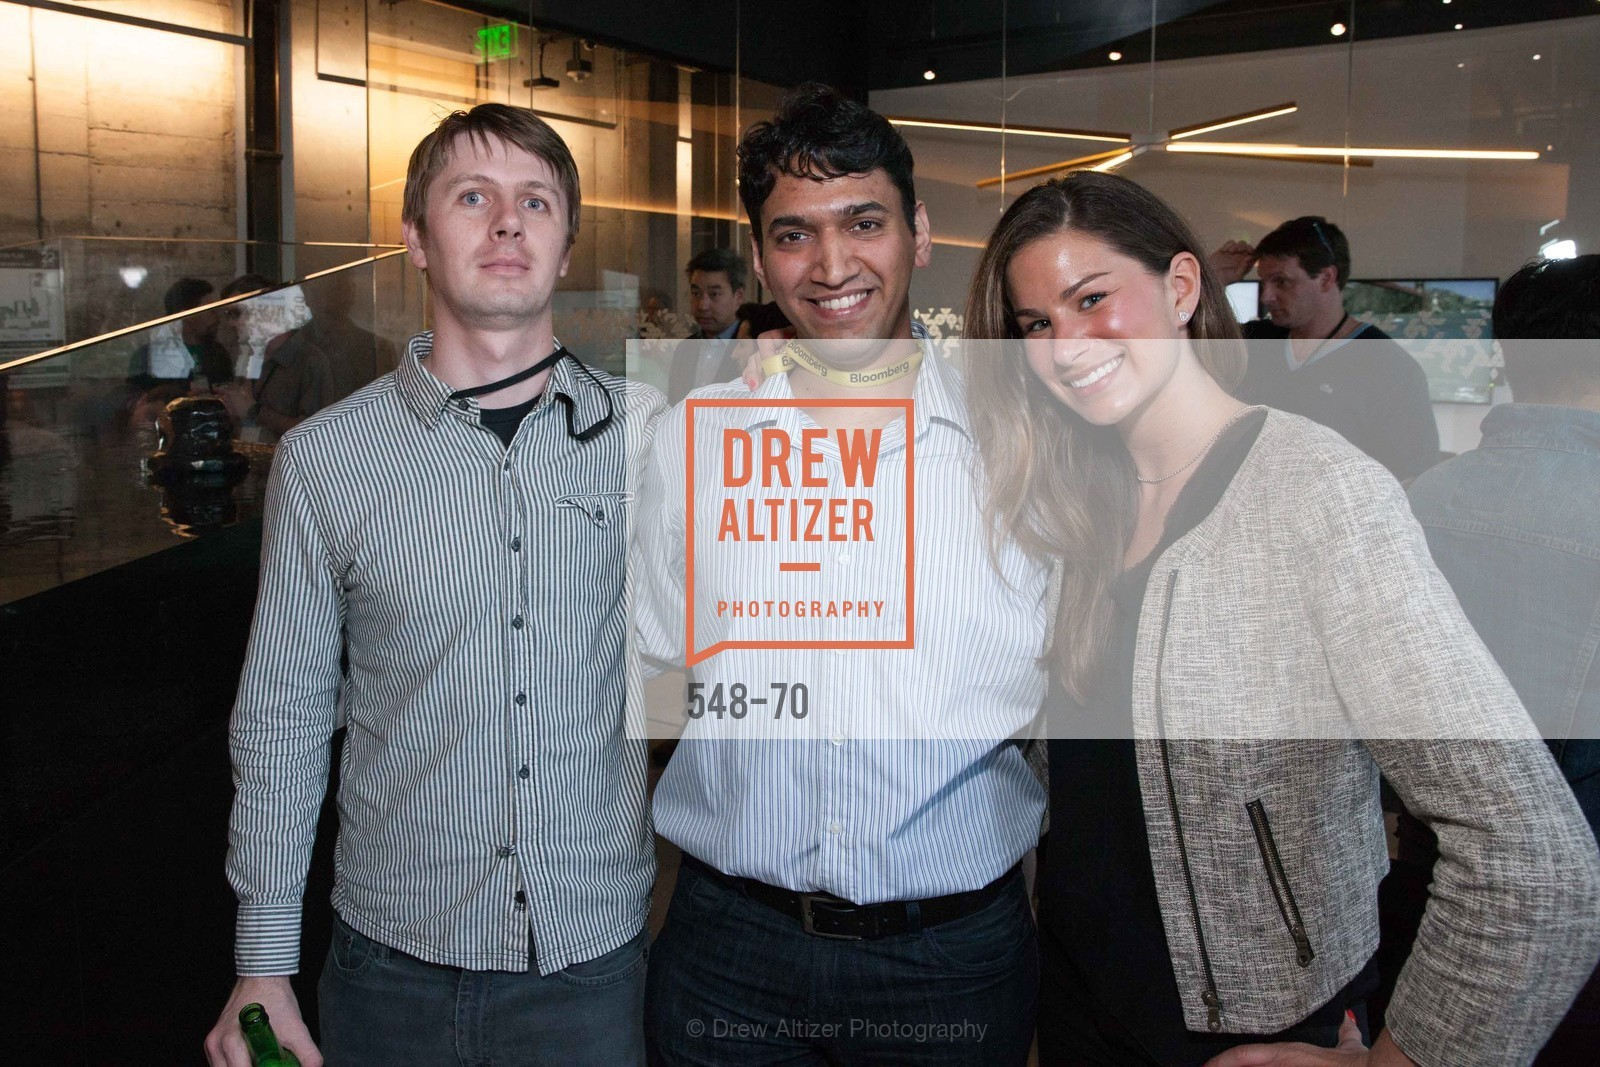 Max Leubbe, Densel Santhamayor, Lauren Tucker, Bloomberg Tech Hosts New San Francisco Office Opening Party, 140 Montgomery Street, May 6th, 2015,Drew Altizer, Drew Altizer Photography, full-service event agency, private events, San Francisco photographer, photographer California